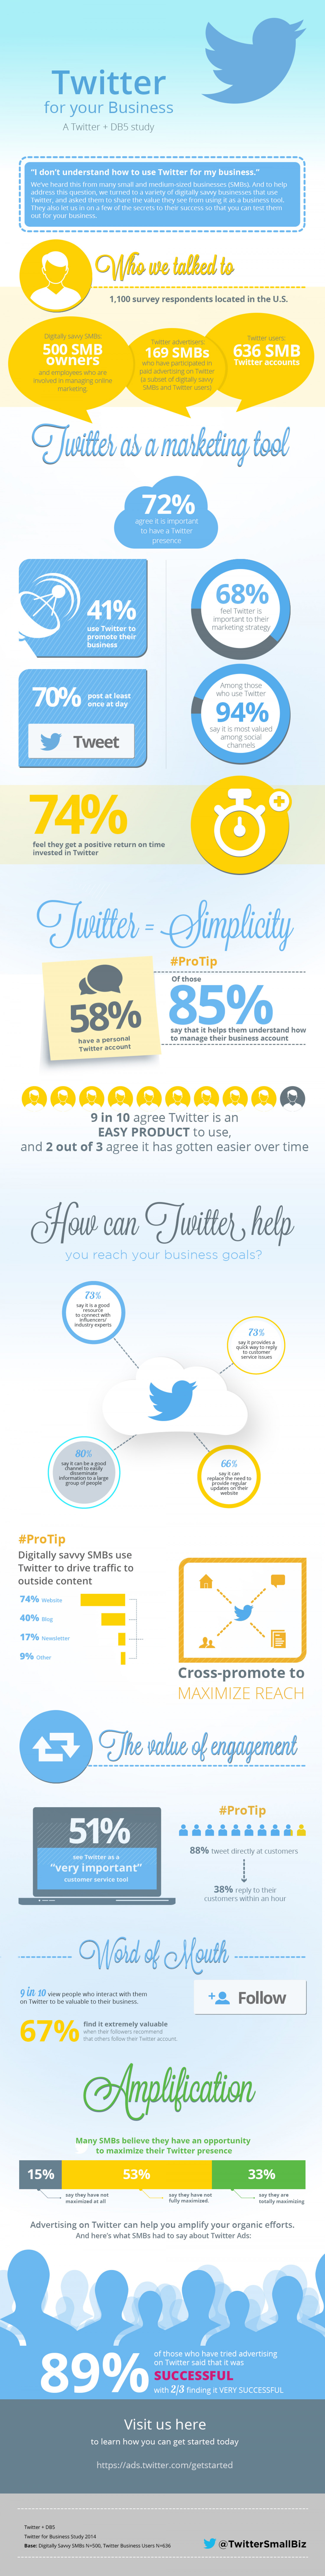 Twitter for your Business. A Twitter & DB5 Study Infographic